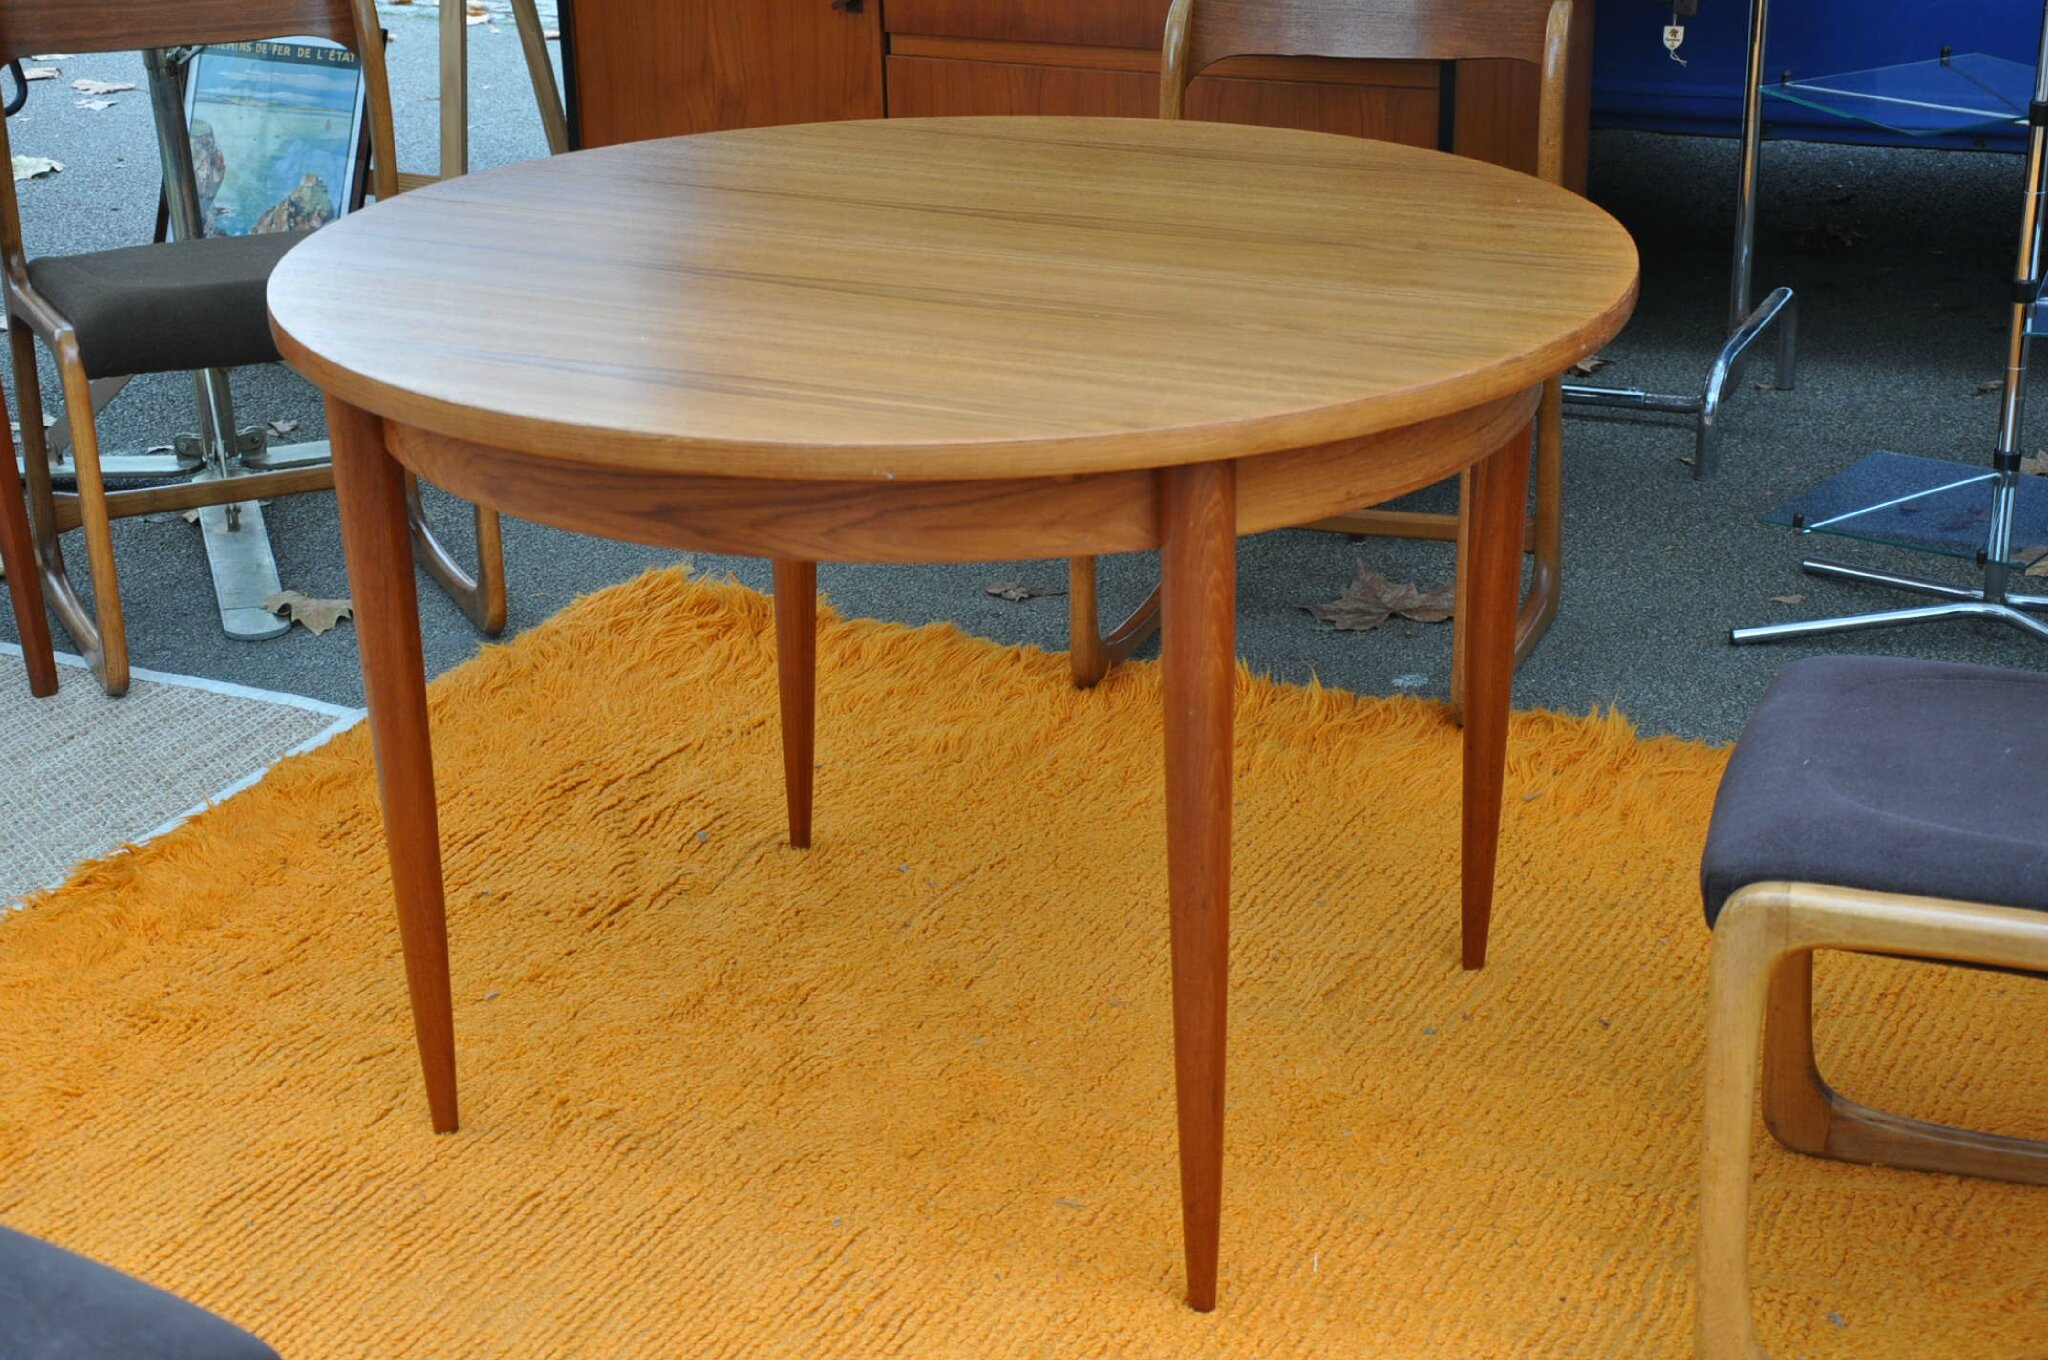 Table ronde teck de type scandinave article vendu - Articles de table ...